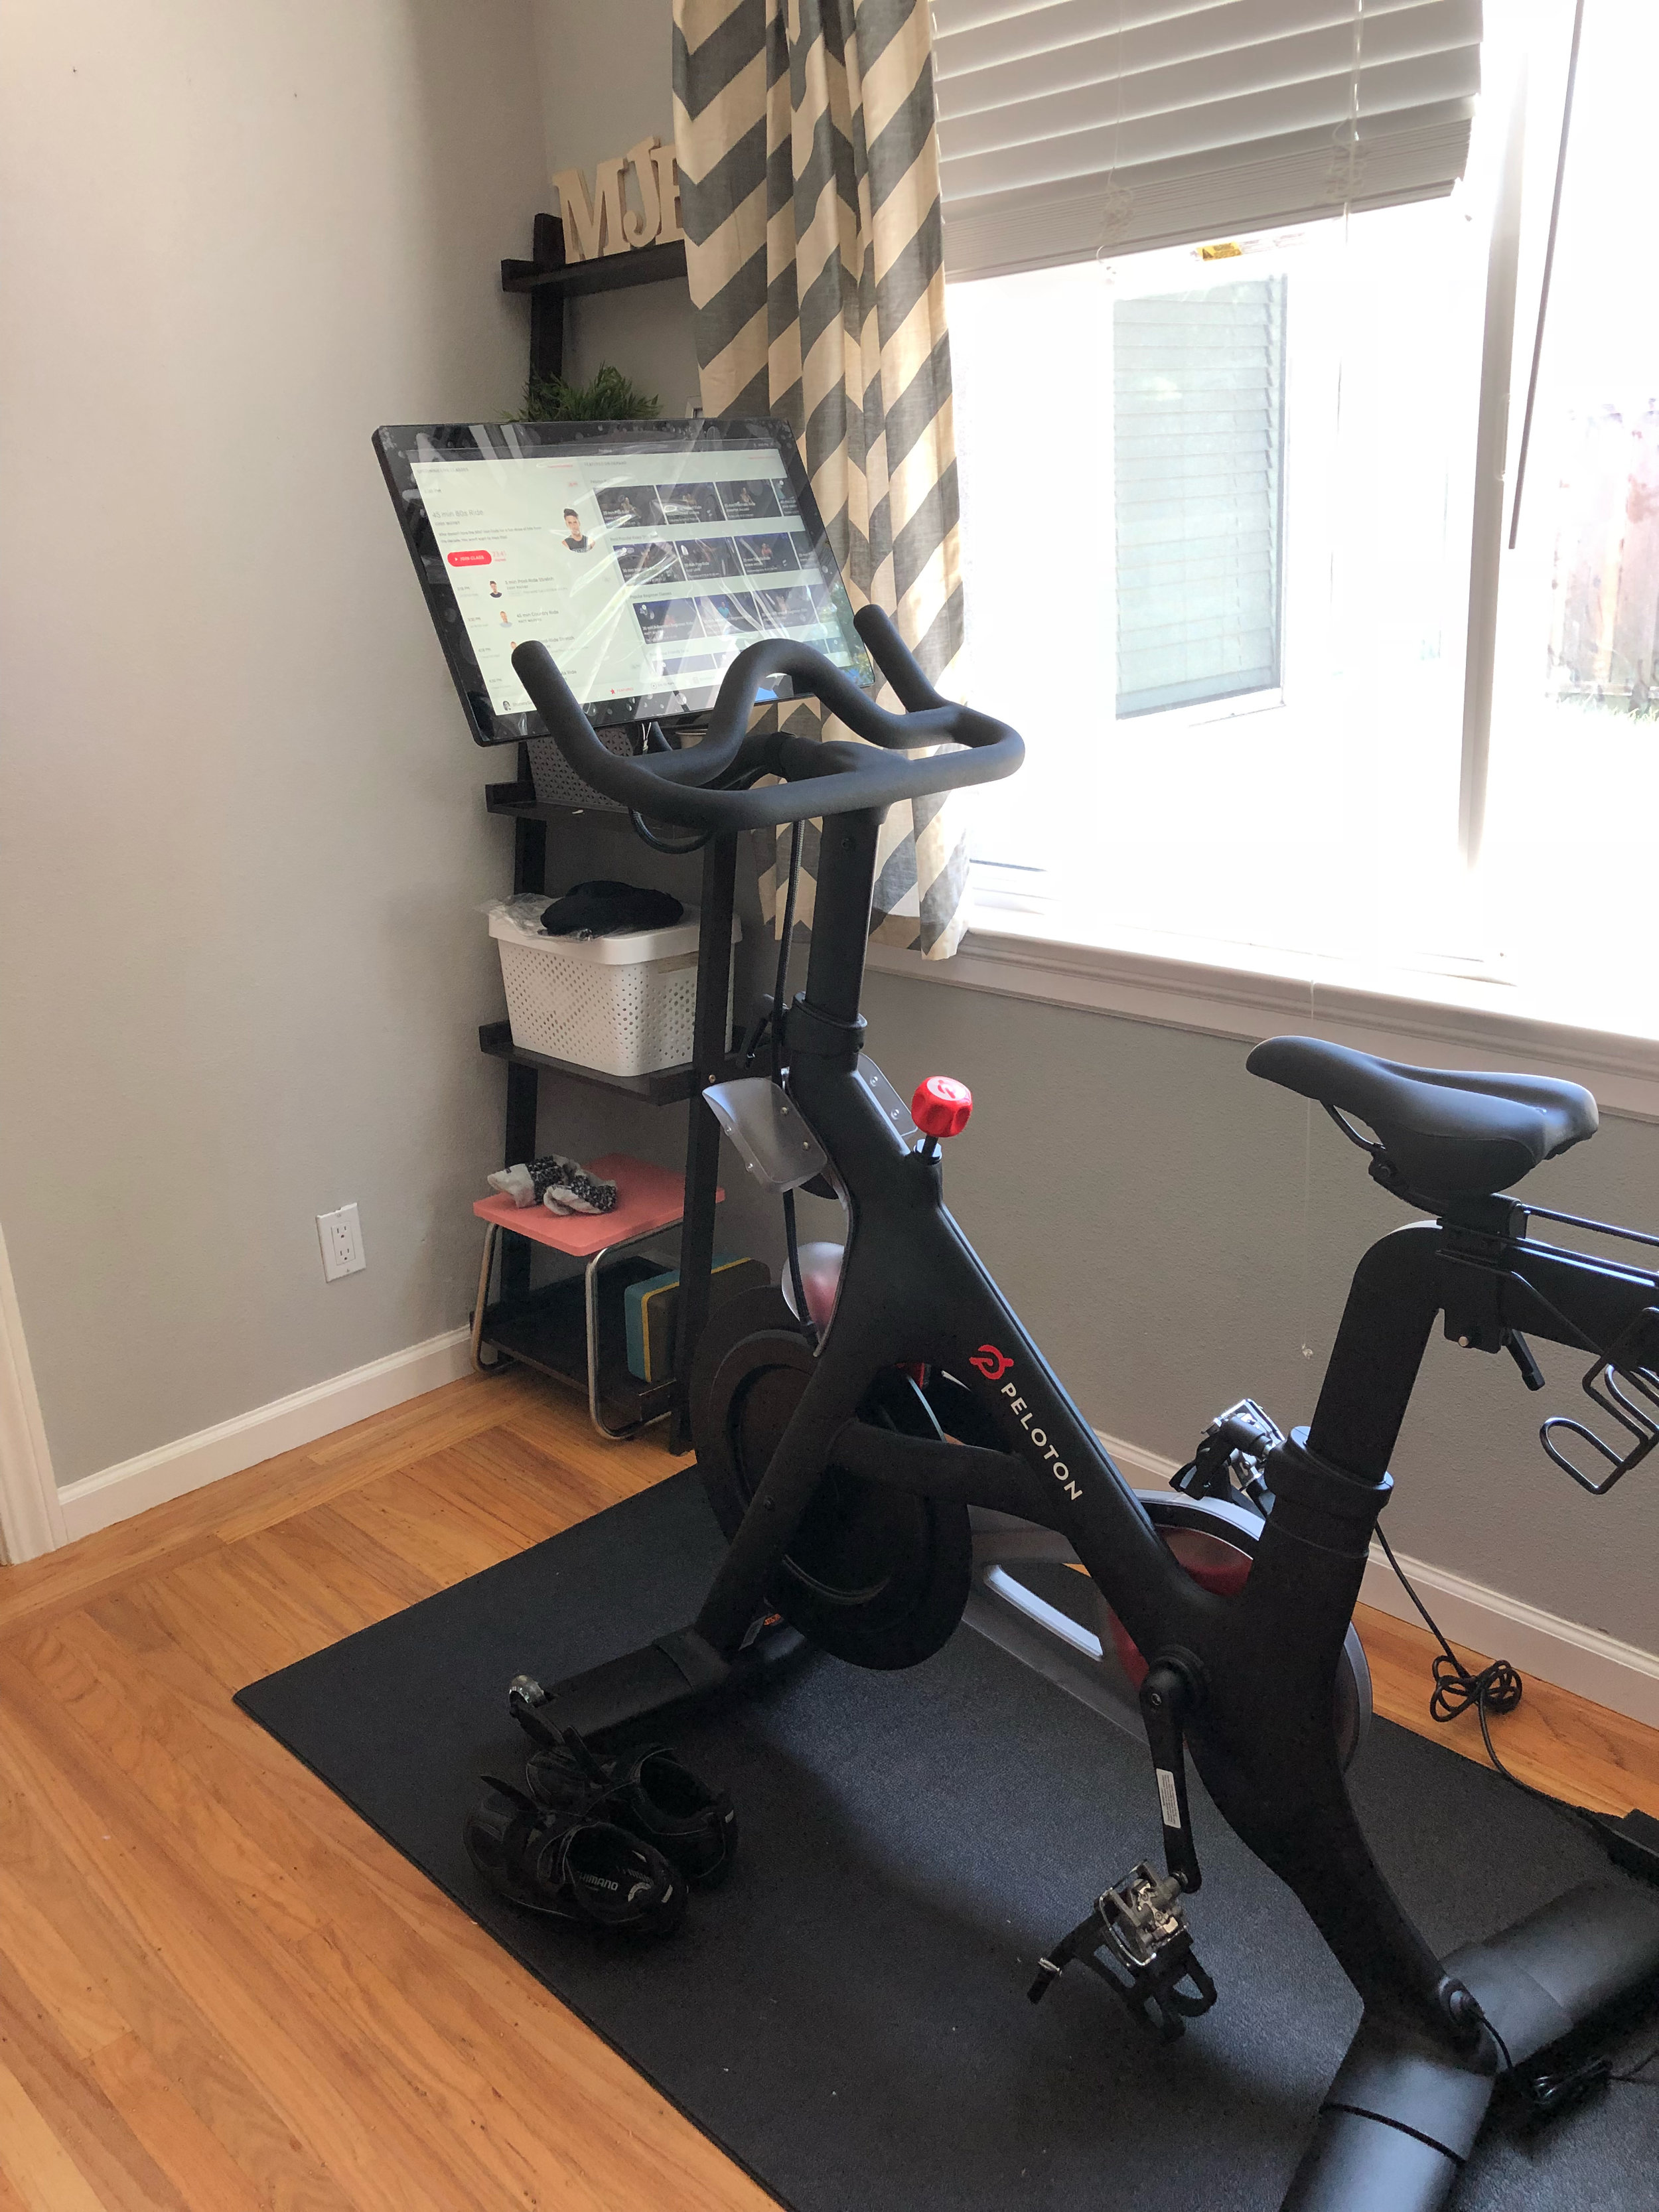 #gamechanger - After two months on the bike, I can see why Peloton changes lives. And it actually has very little to do with the (beautiful) bike itself.